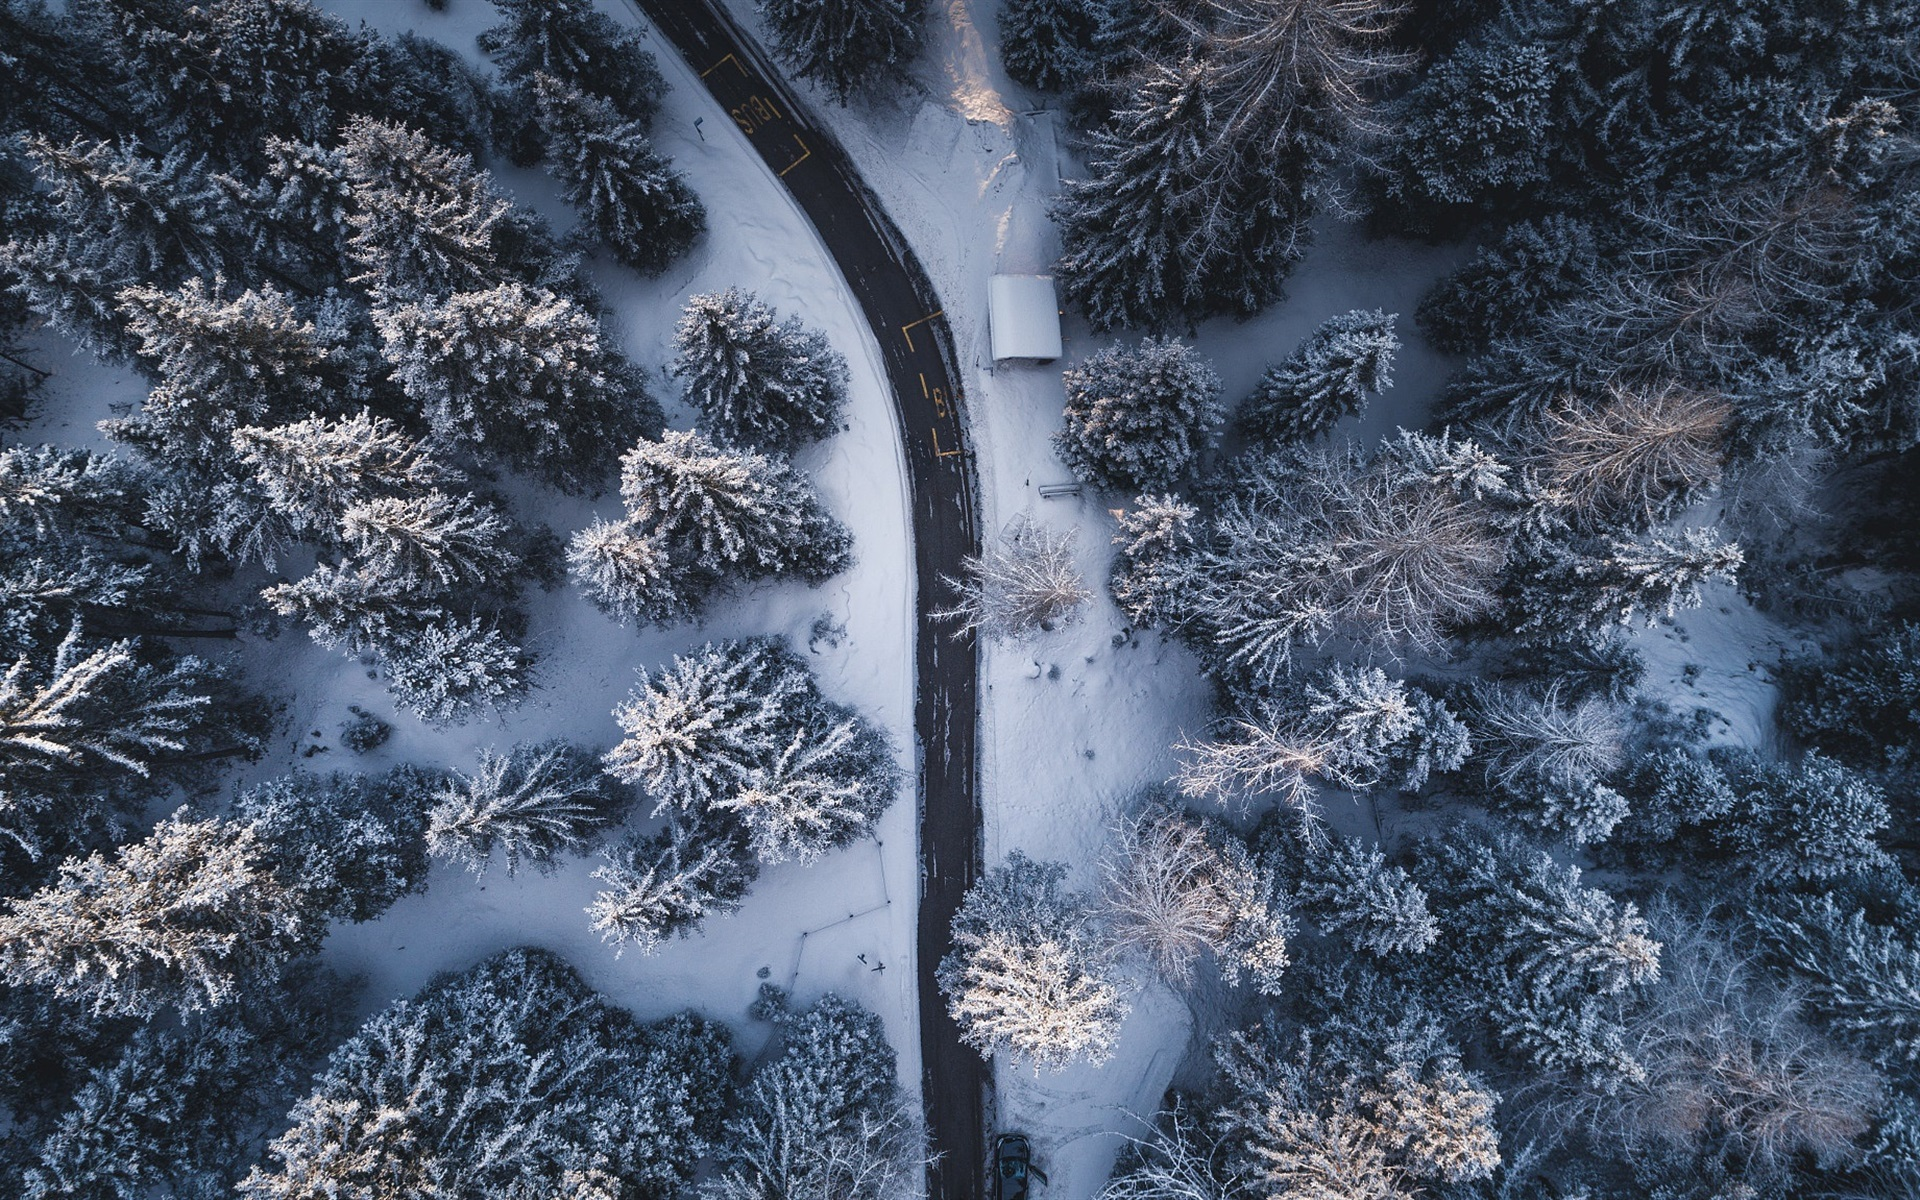 Cute Love Wallpaper Iphone 4s Wallpaper Winter Trees Road Snow From Top View